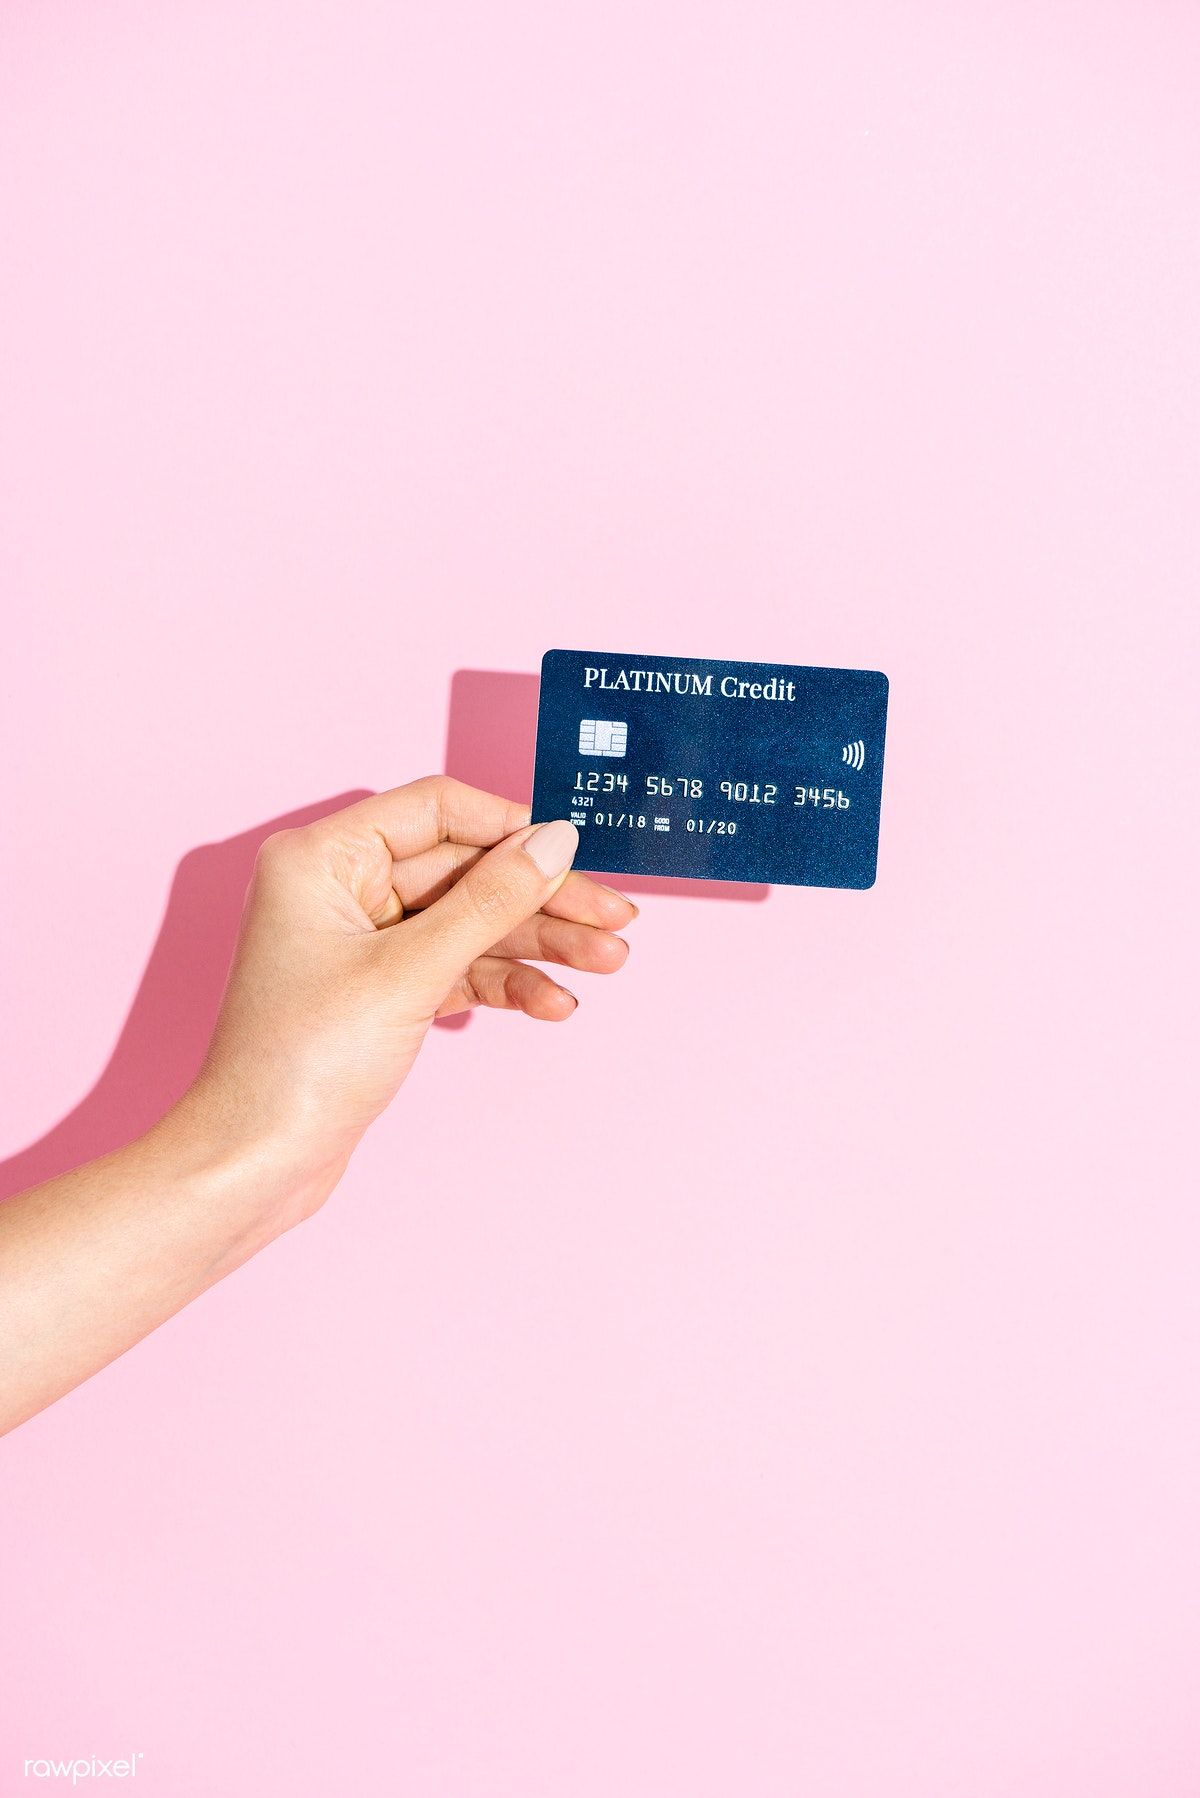 Download premium image of woman holding a credit card